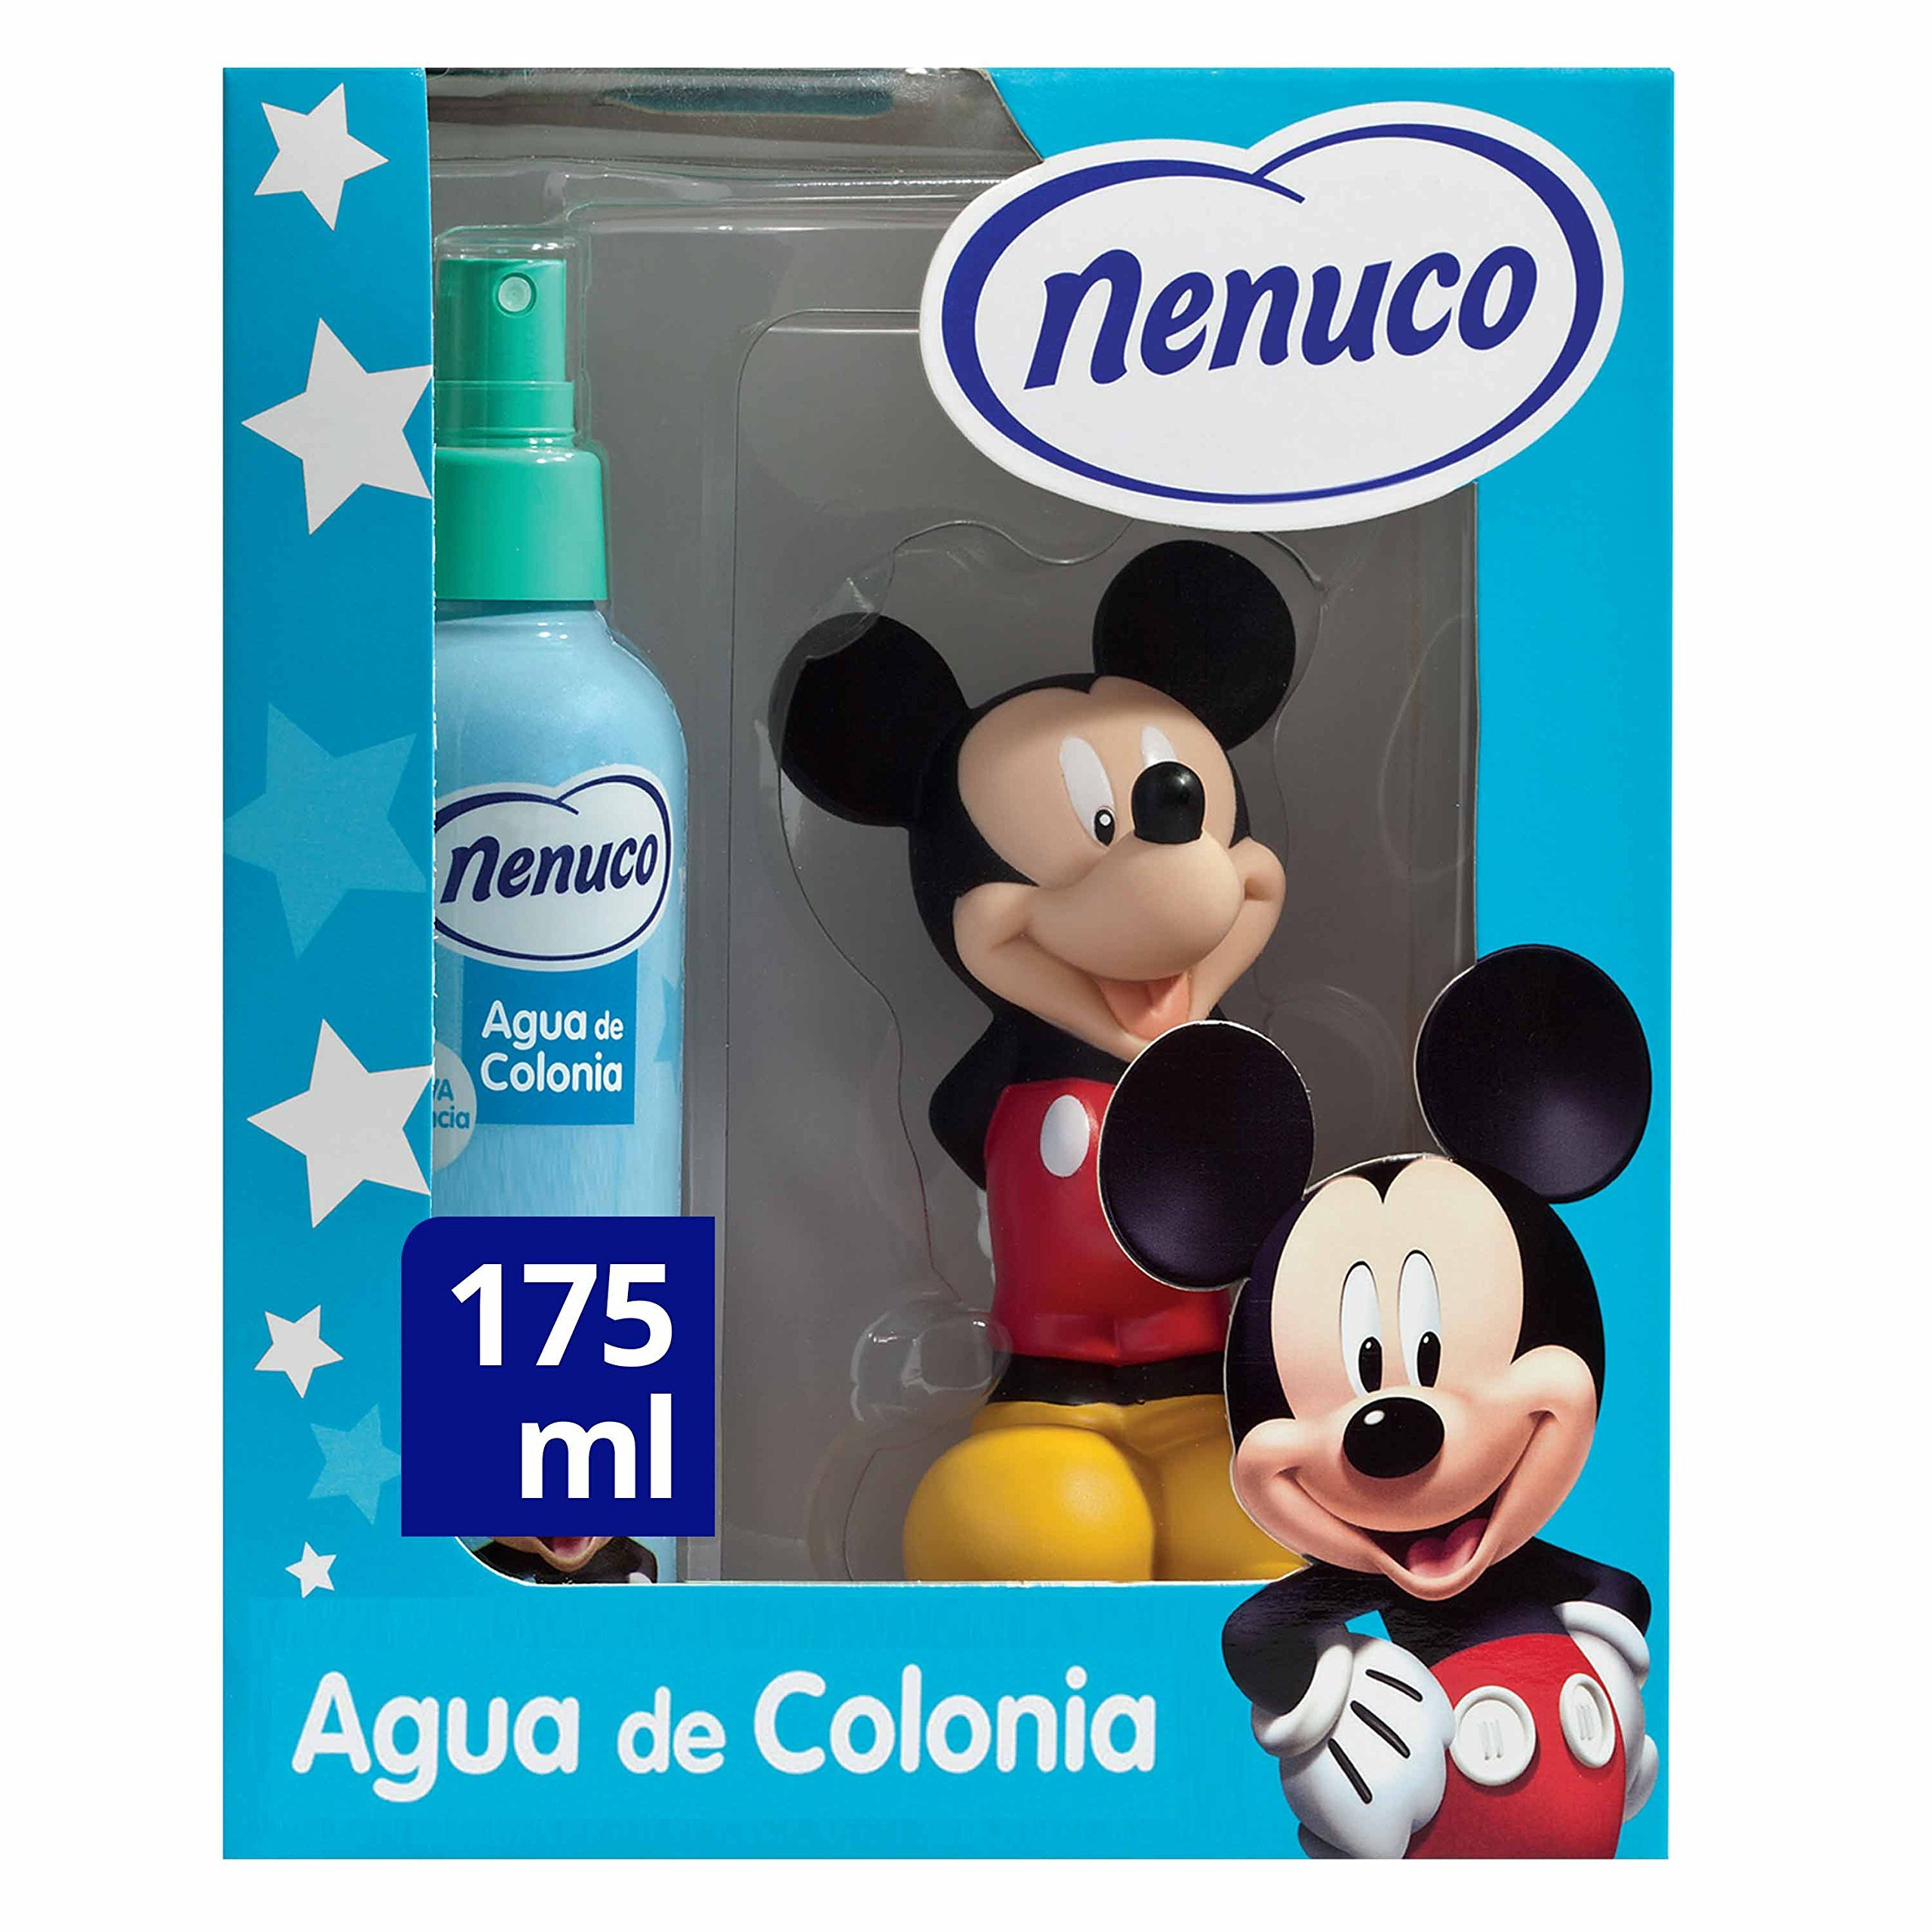 Nenuco Pack Agua de Colonia Mickey con muñeco - 175 ml product image